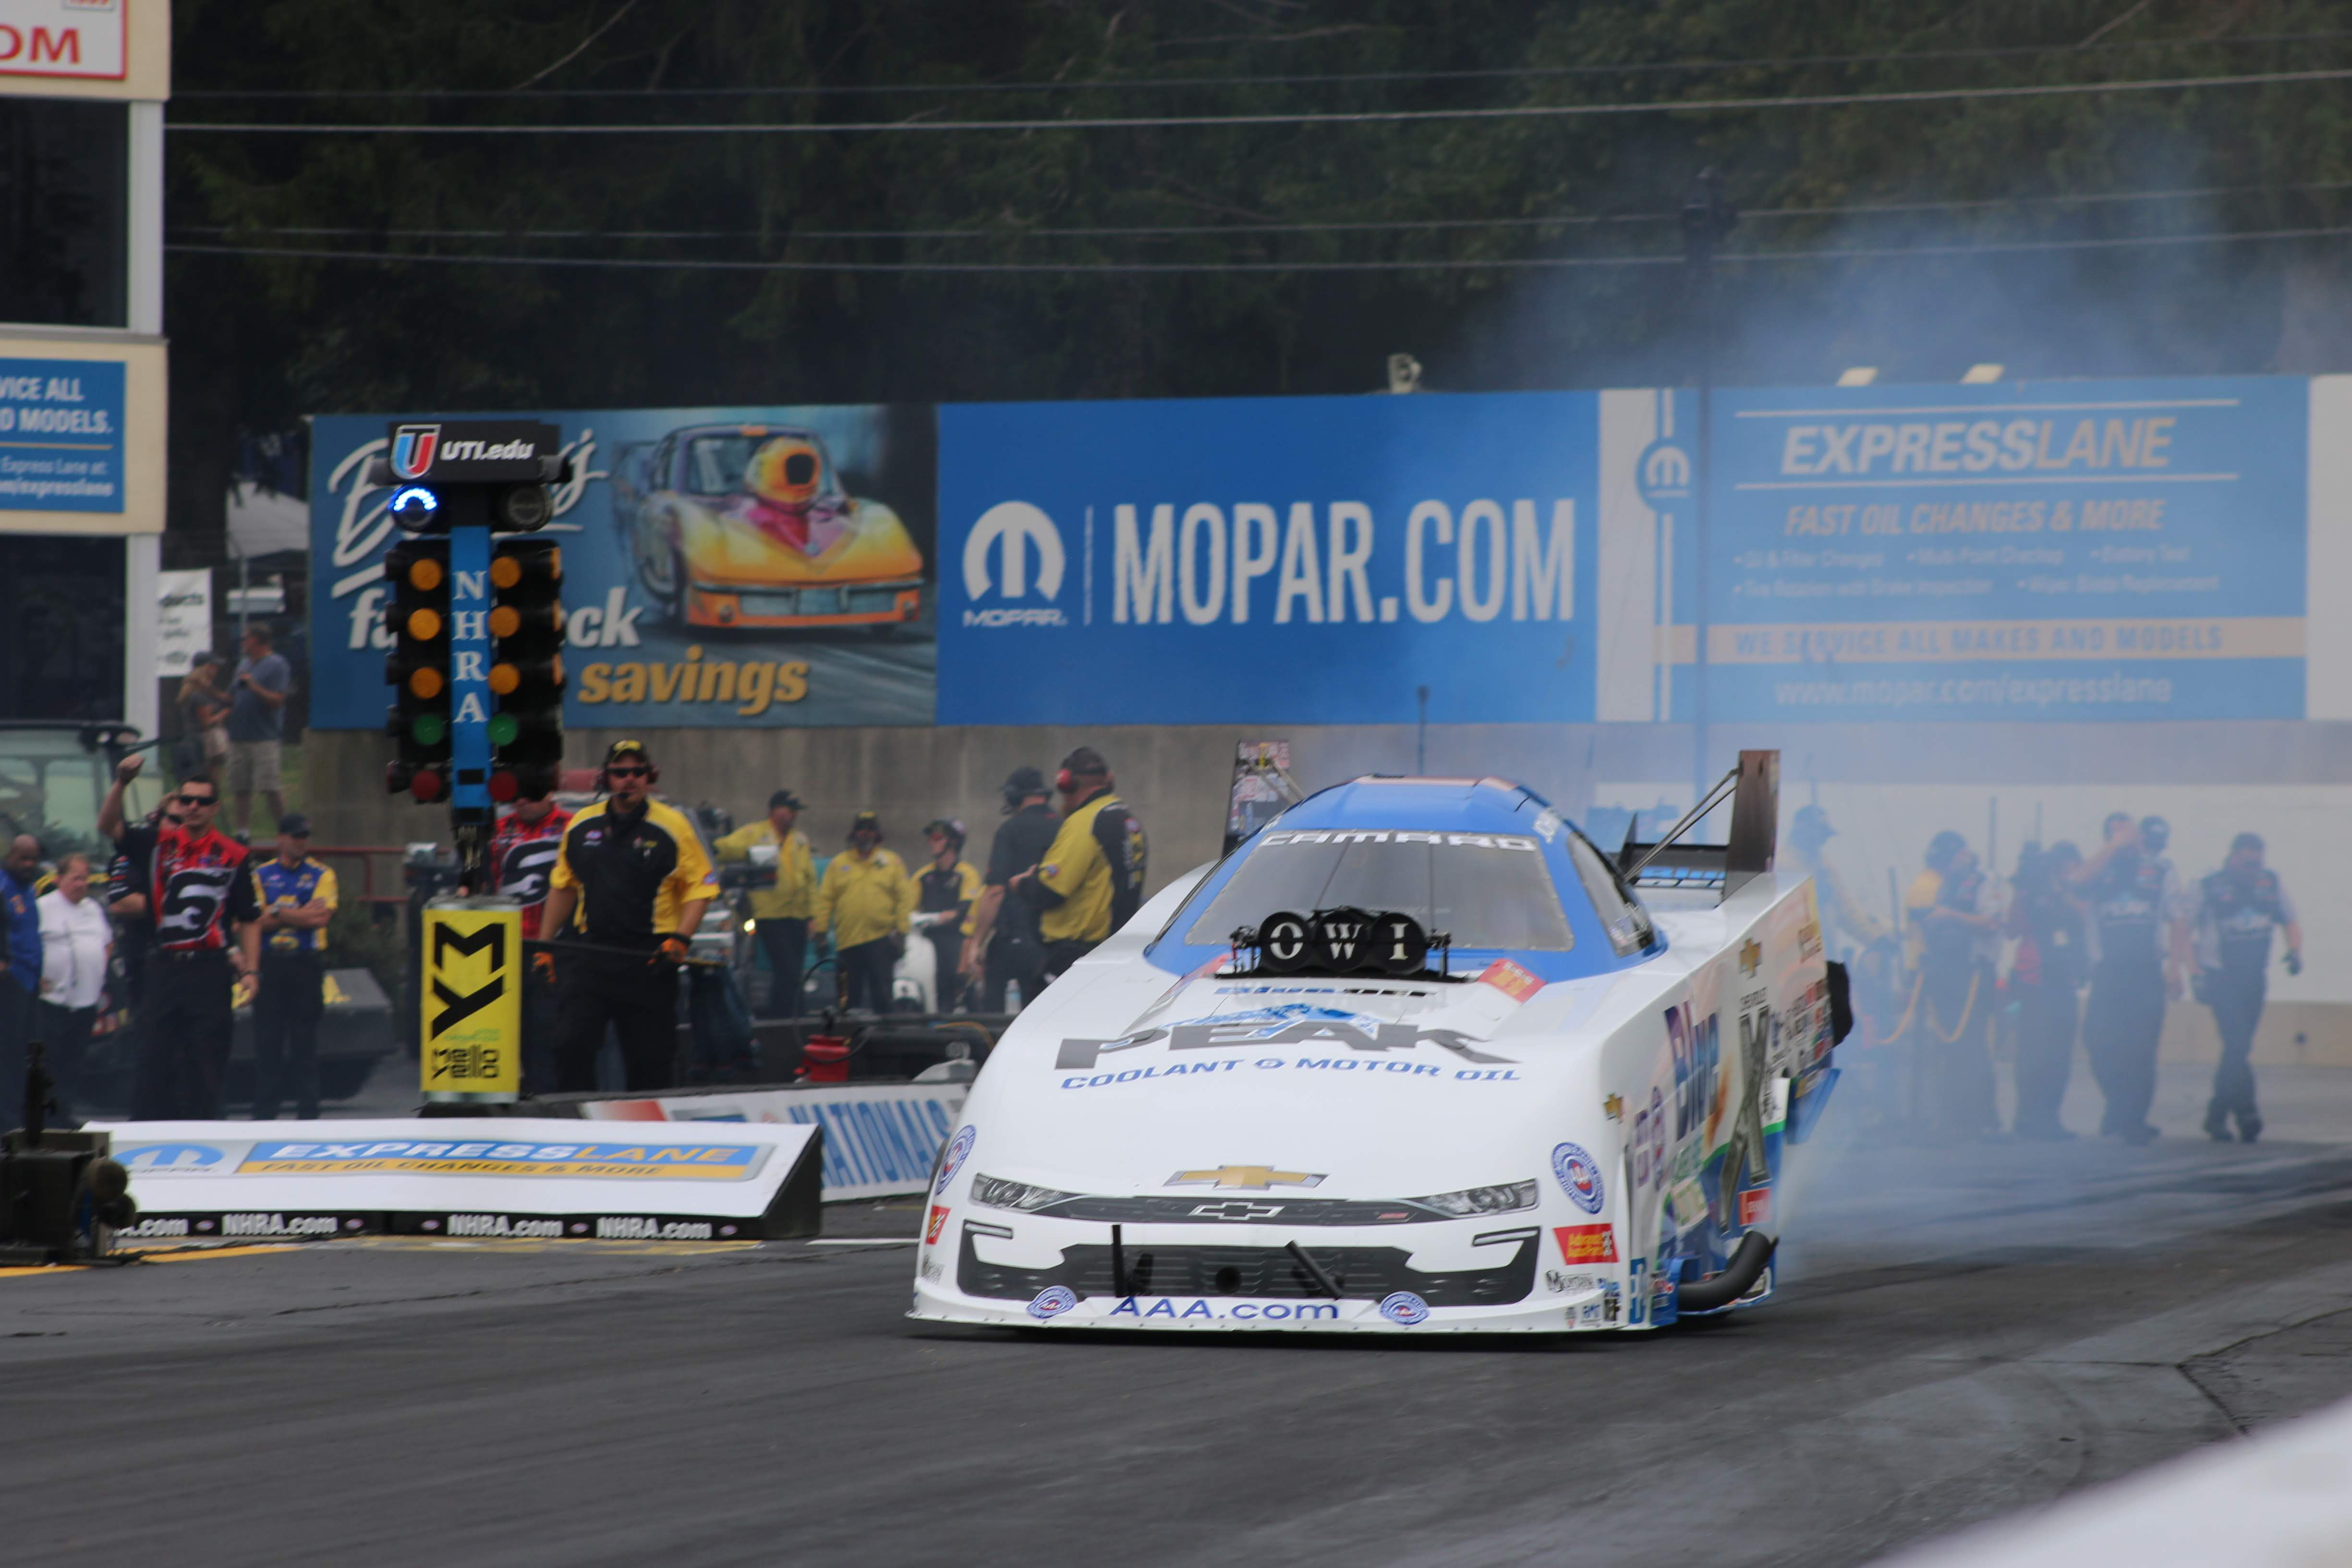 Living legend Funny Car driver John Force competing in the Mopar Express Lane NHRA Nationals presented by Pennzoil